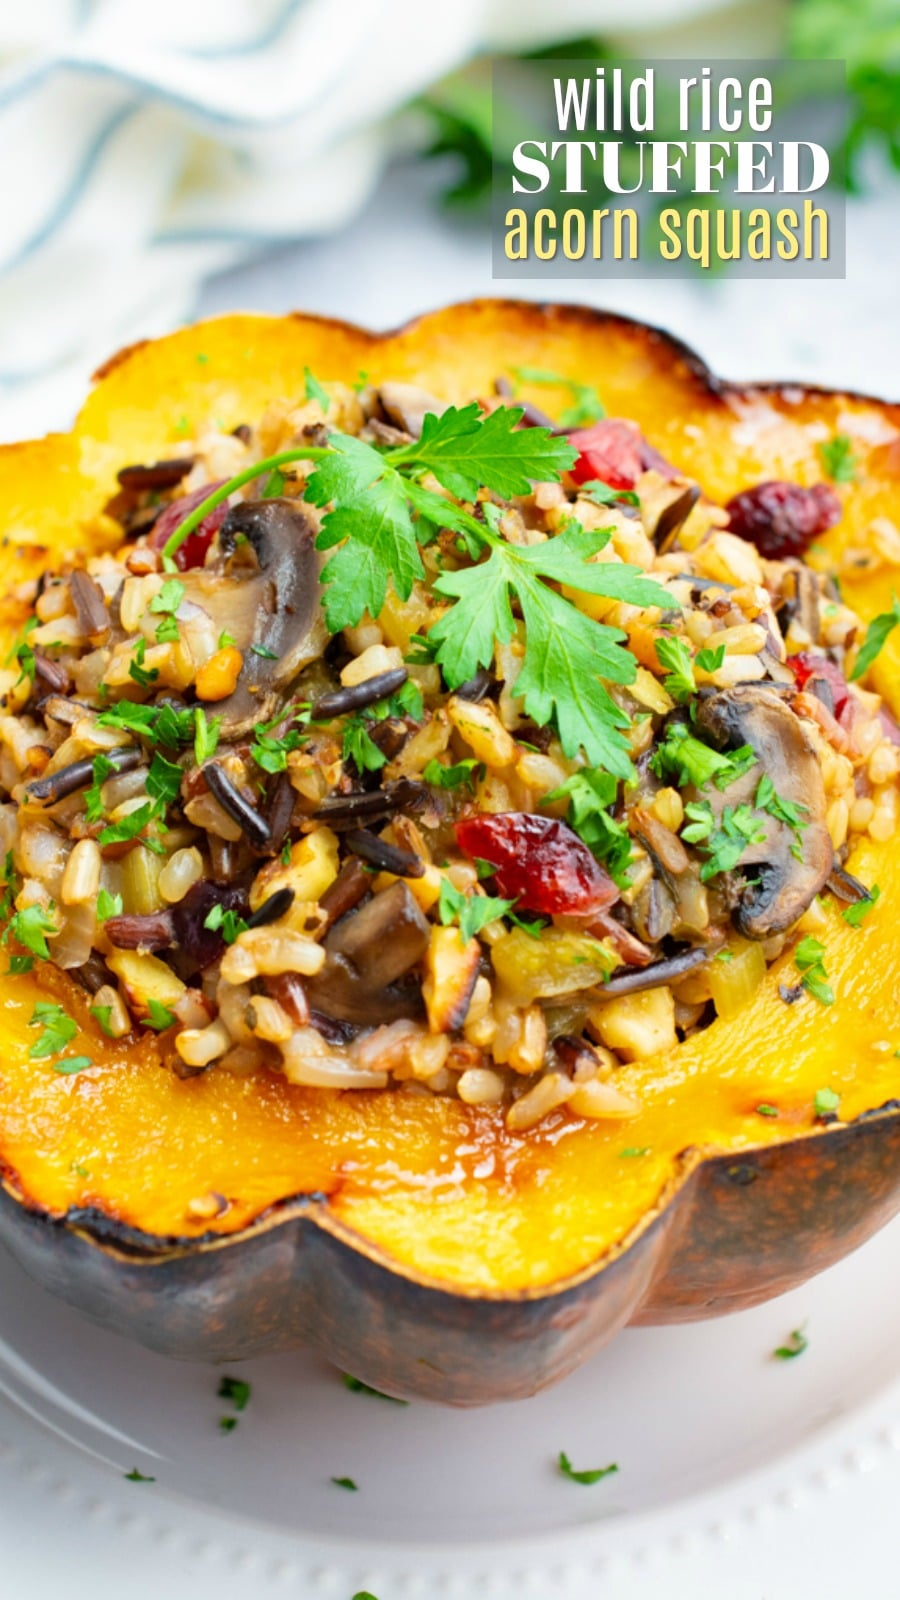 Wild rice stuffed acorn squash with text for Pinterest.